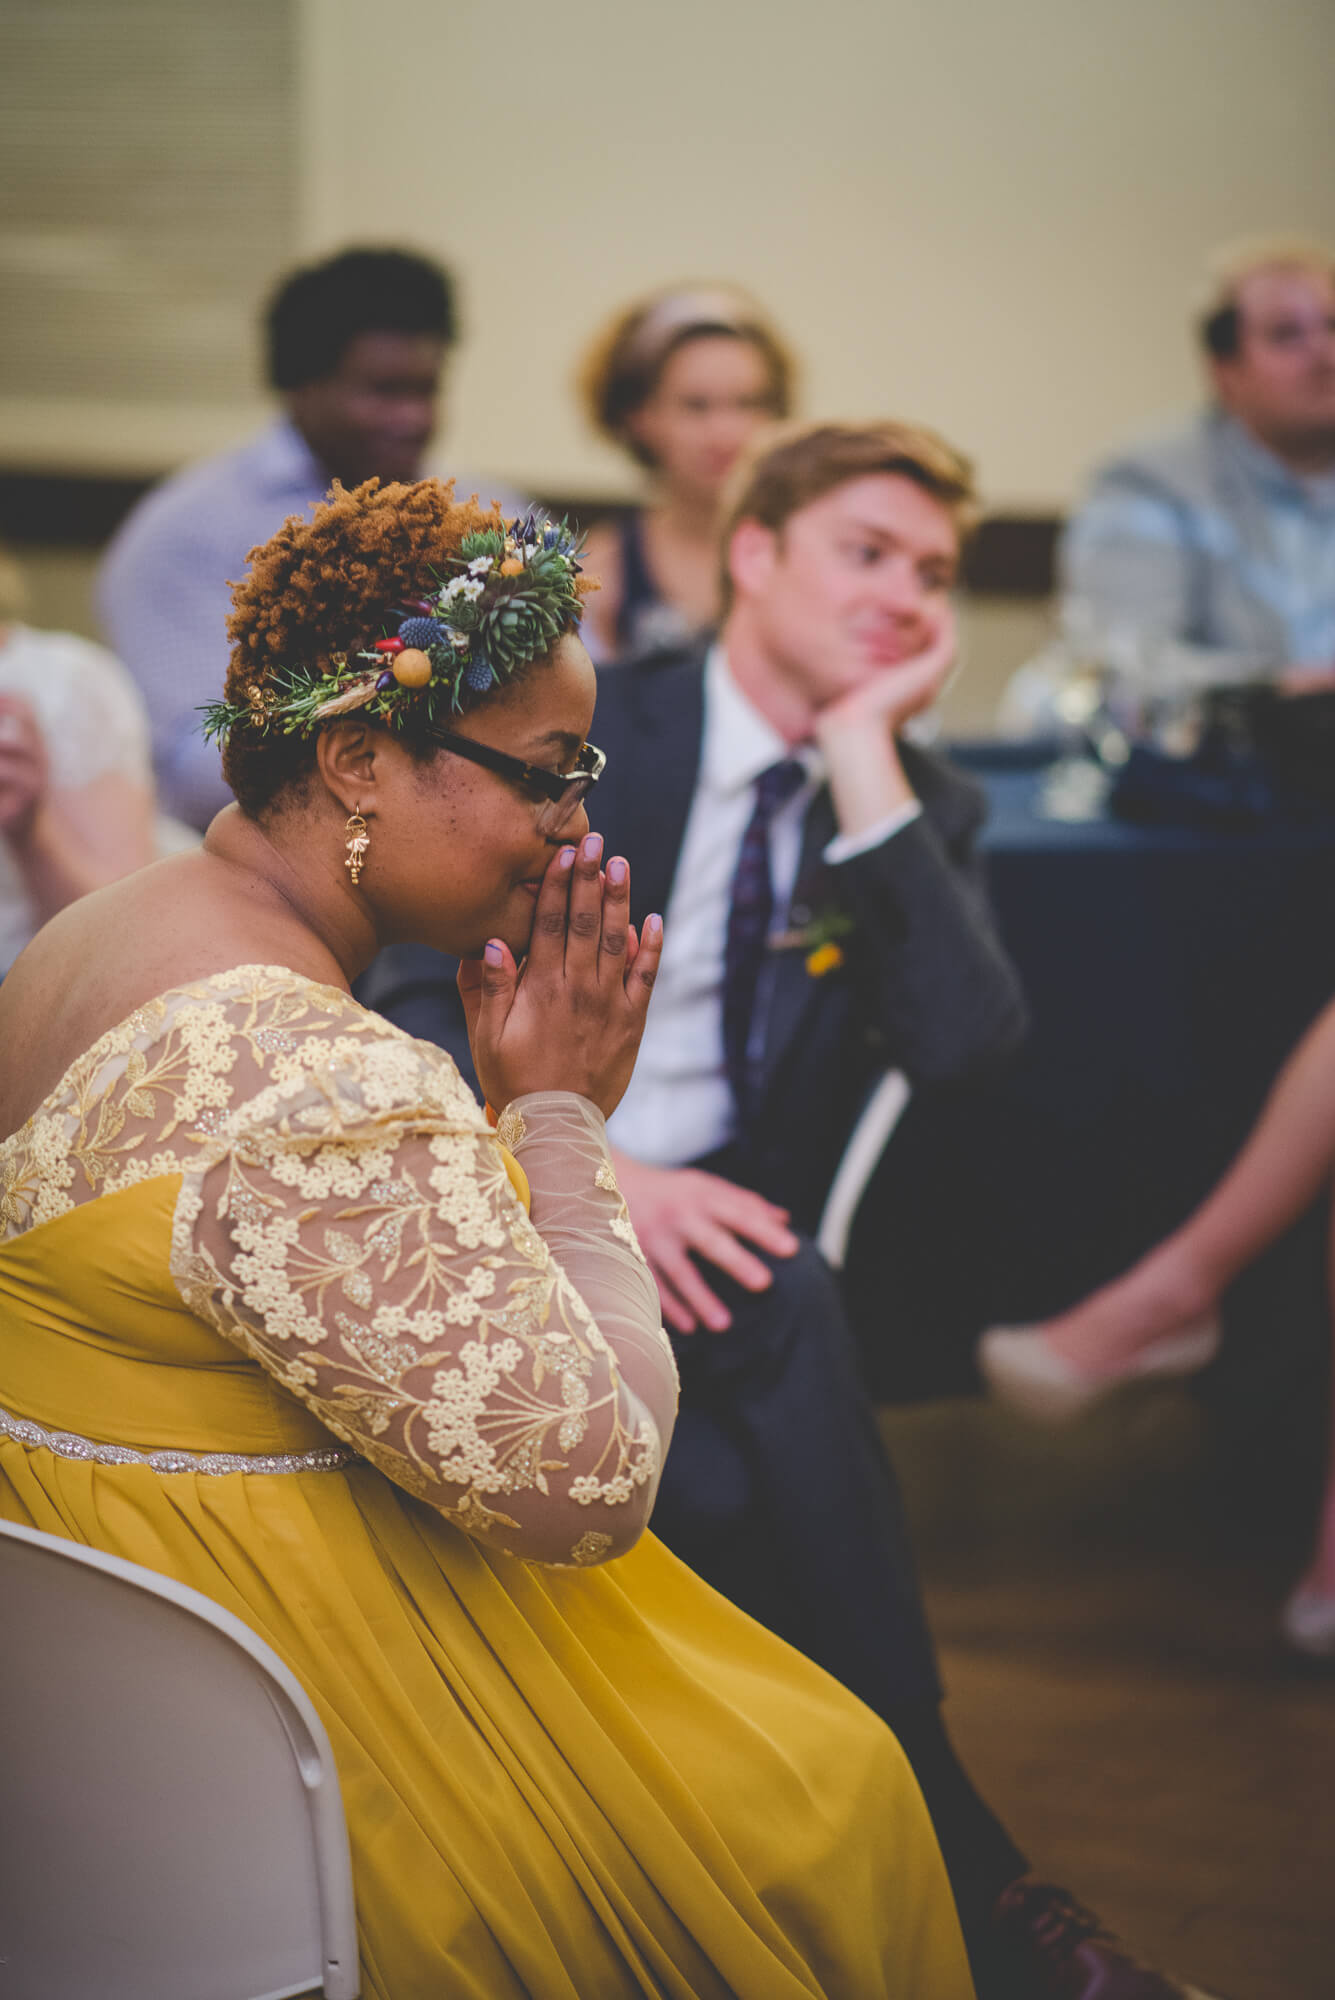 bride in yellow wedding dress with long lace sleeves and succulent flower crown quietly listening to guest singing during toasts